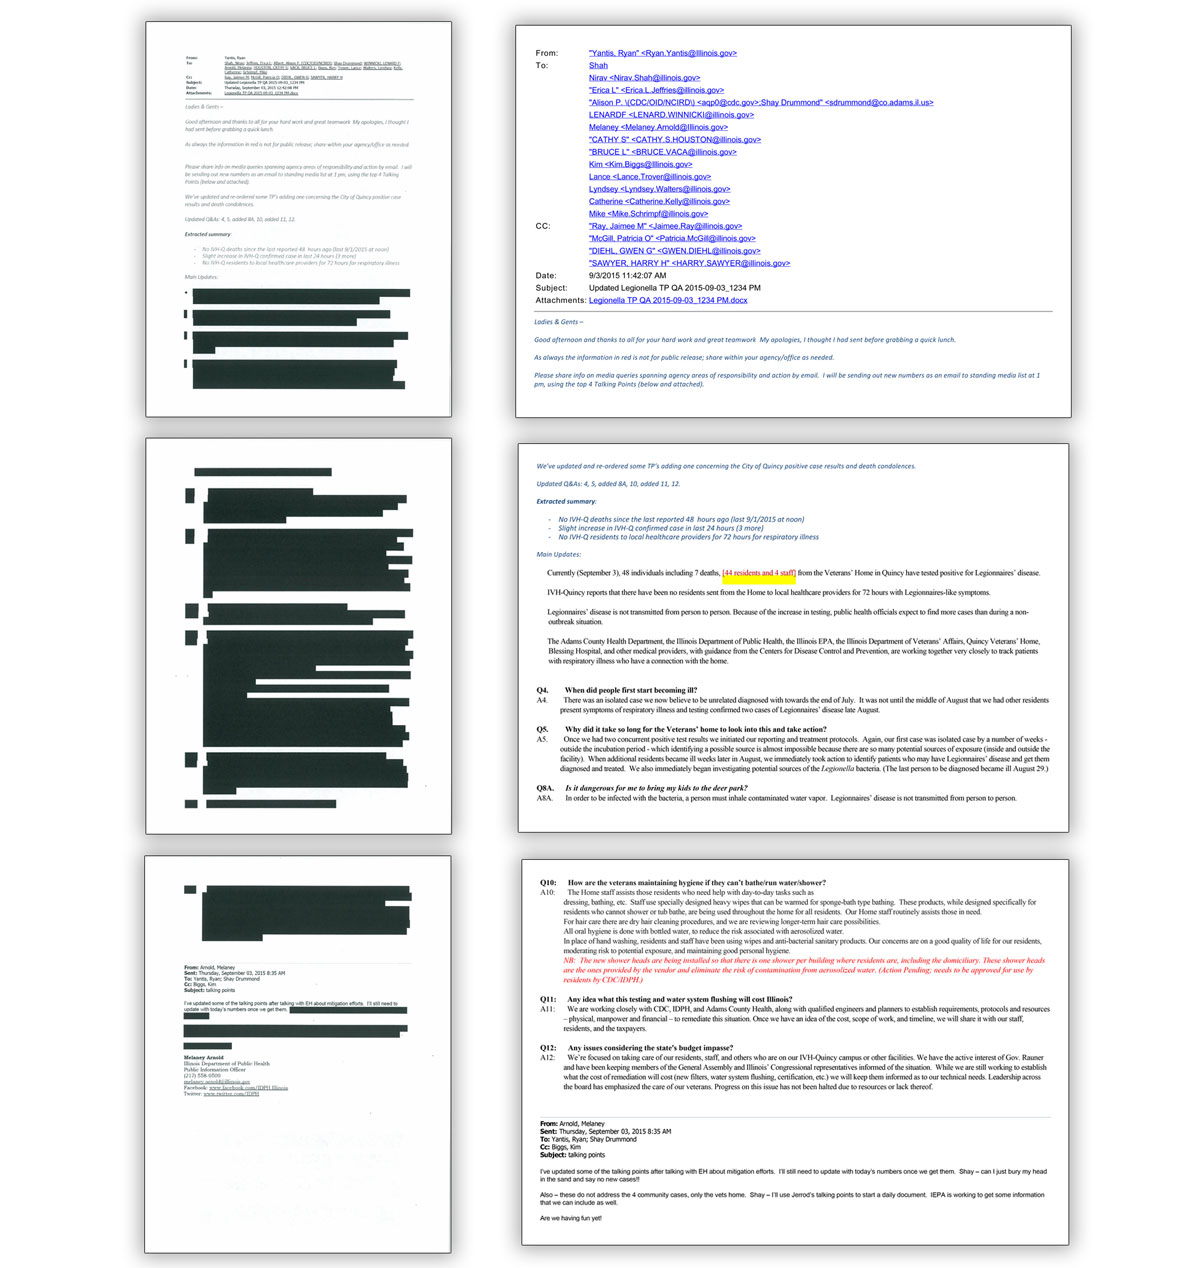 Sample of redactions